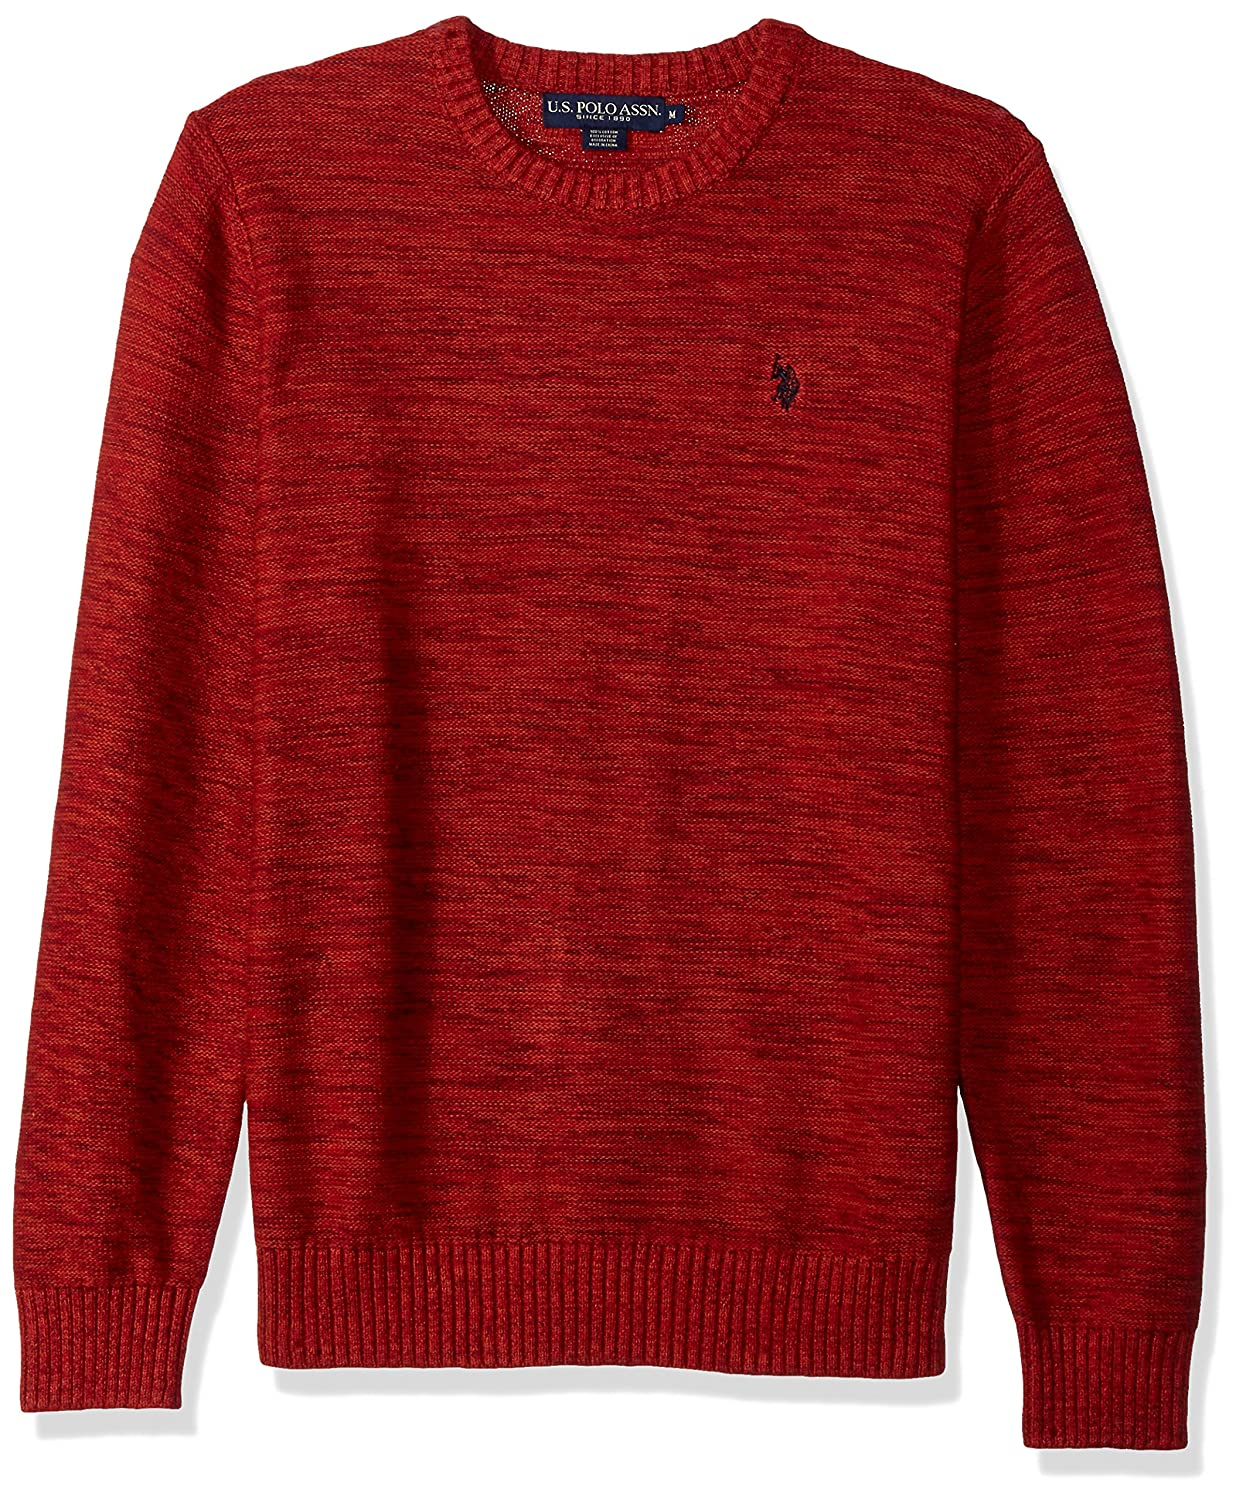 U.S. Polo Assn. Men's Marl Reverse Jersey Crew Neck Sweater ACUF7S5827